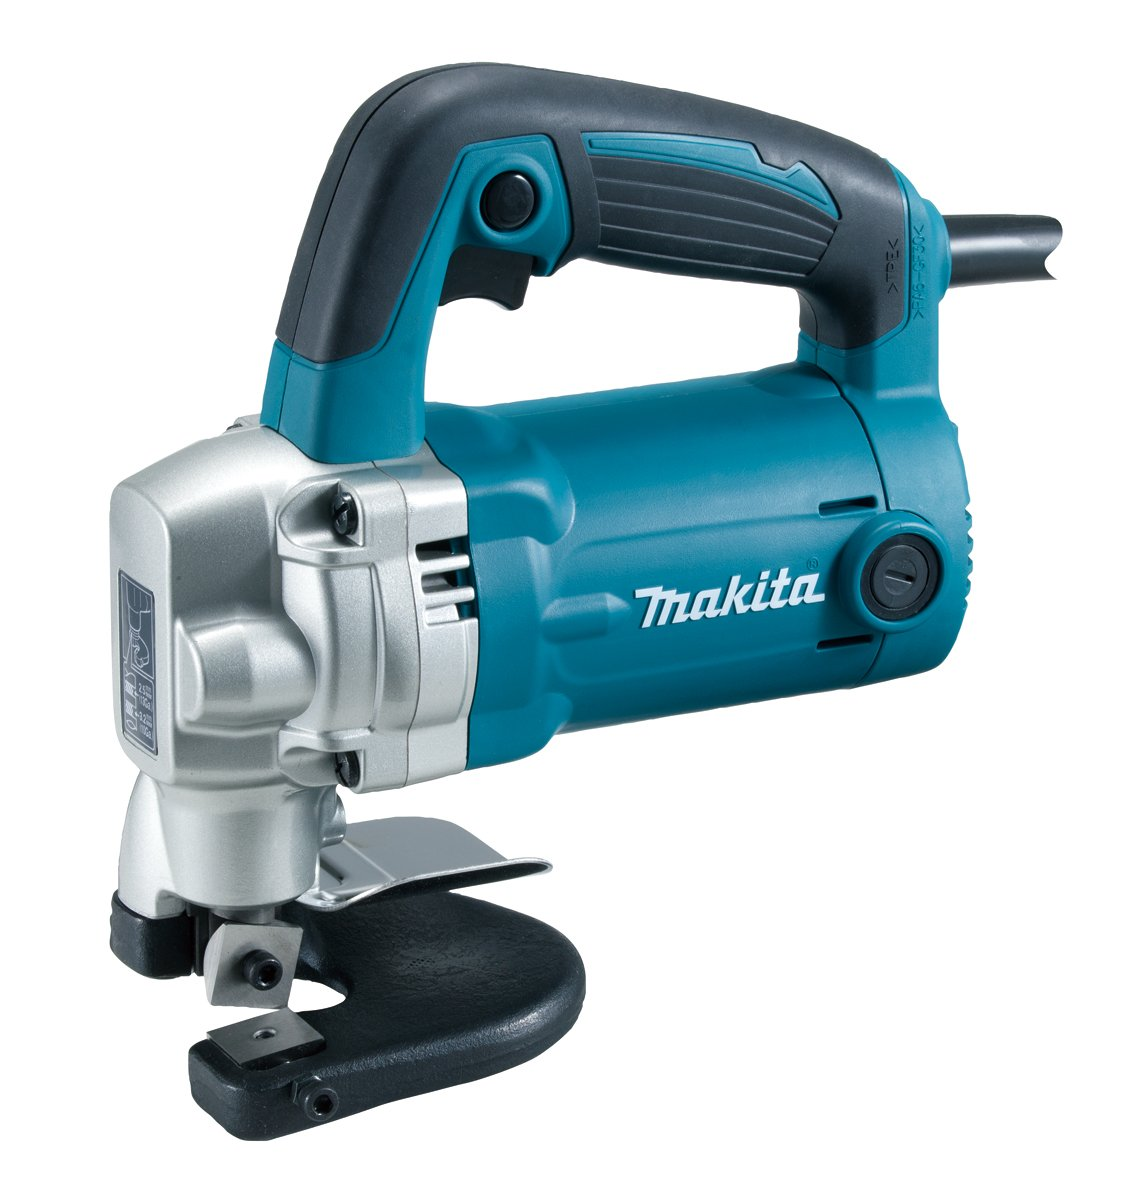 Makita JS3201 10-Gauge Shear by Makita